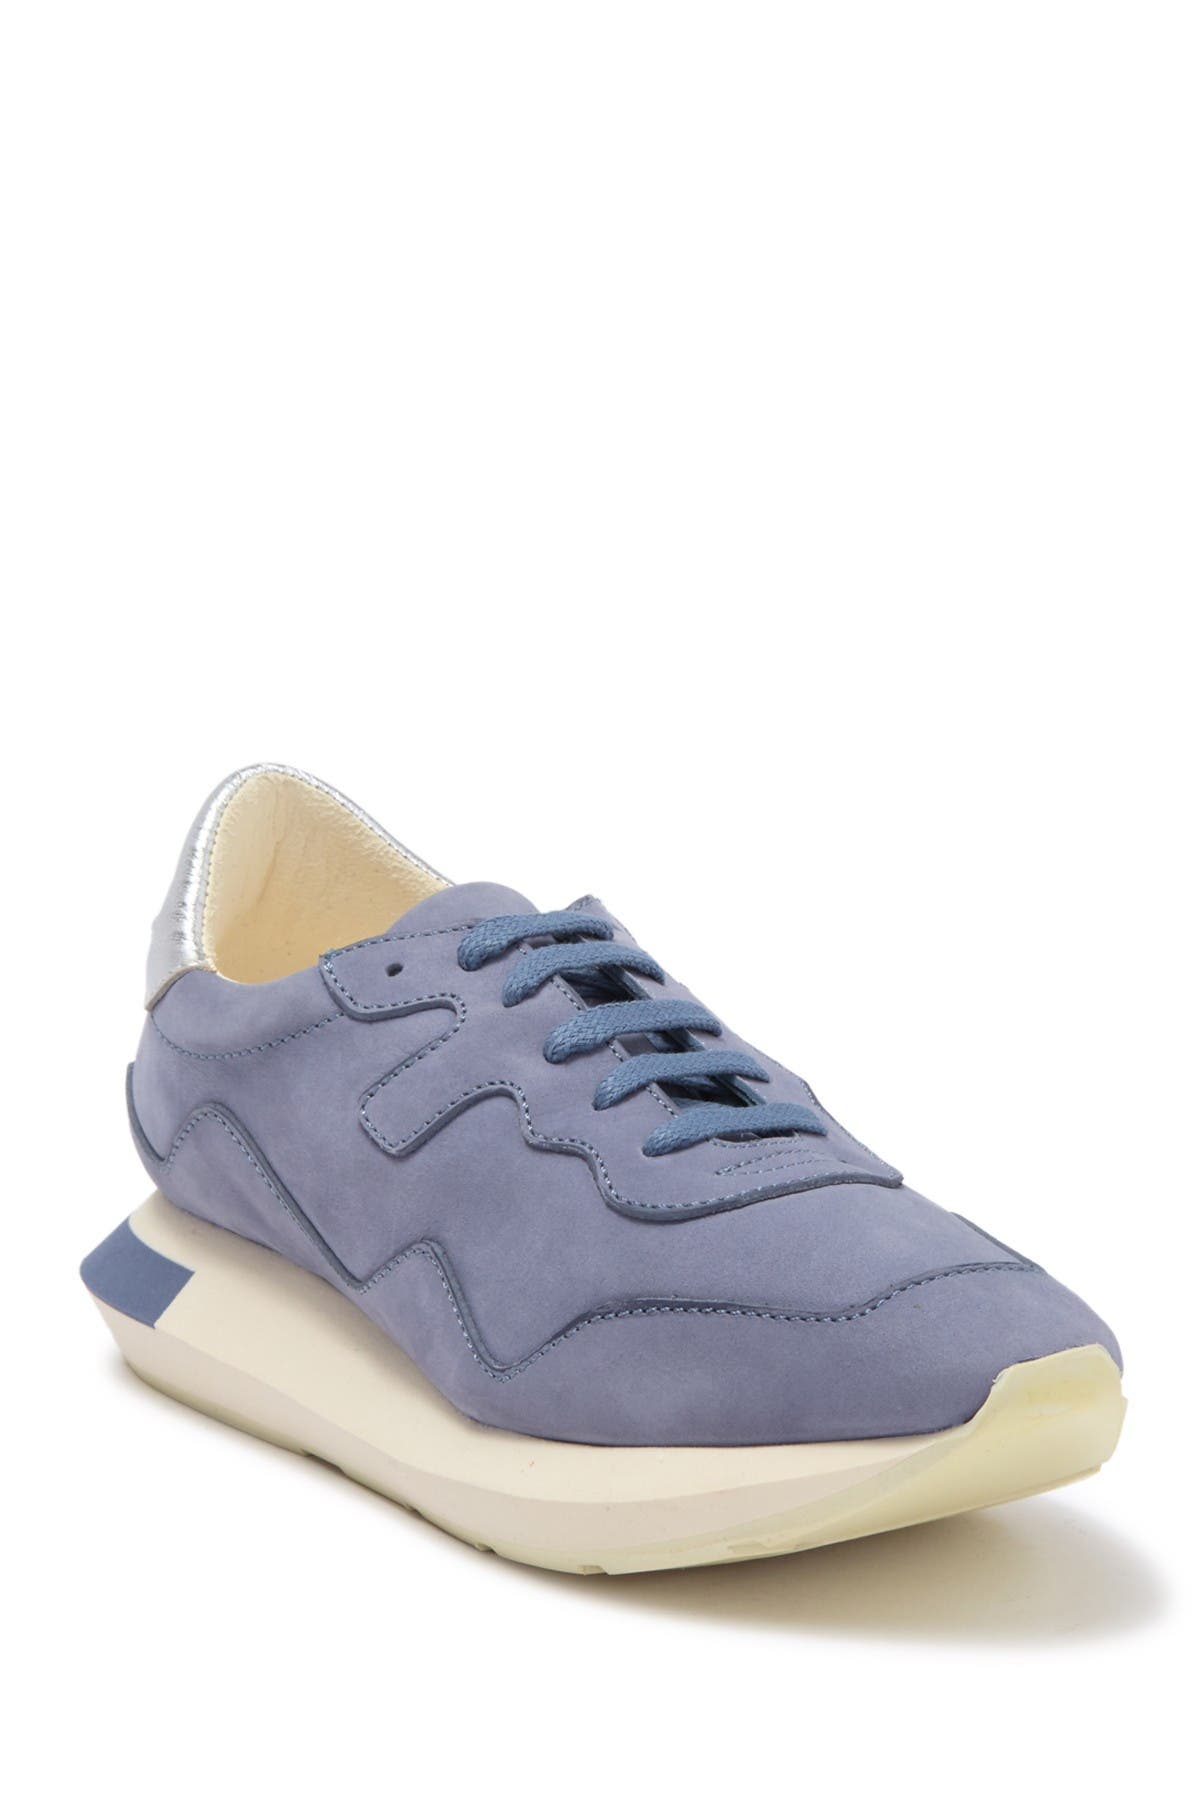 Image of Paloma Barcelo Merli Fashion Sneaker